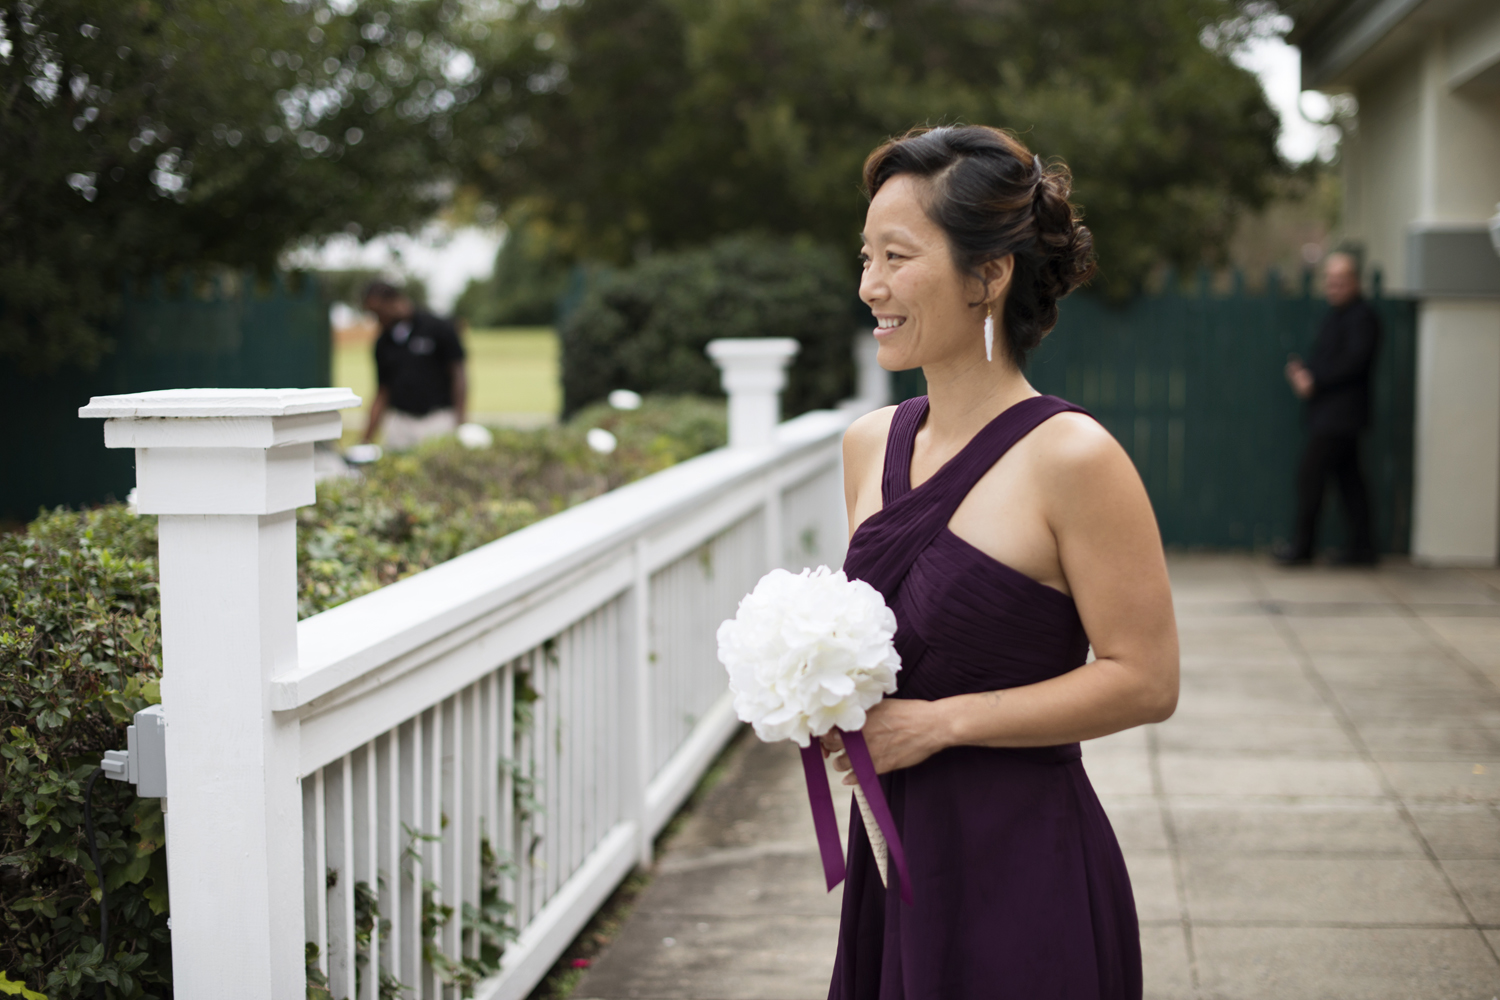 Maid of honor wearing purple at an outdoor wedding in Virginia